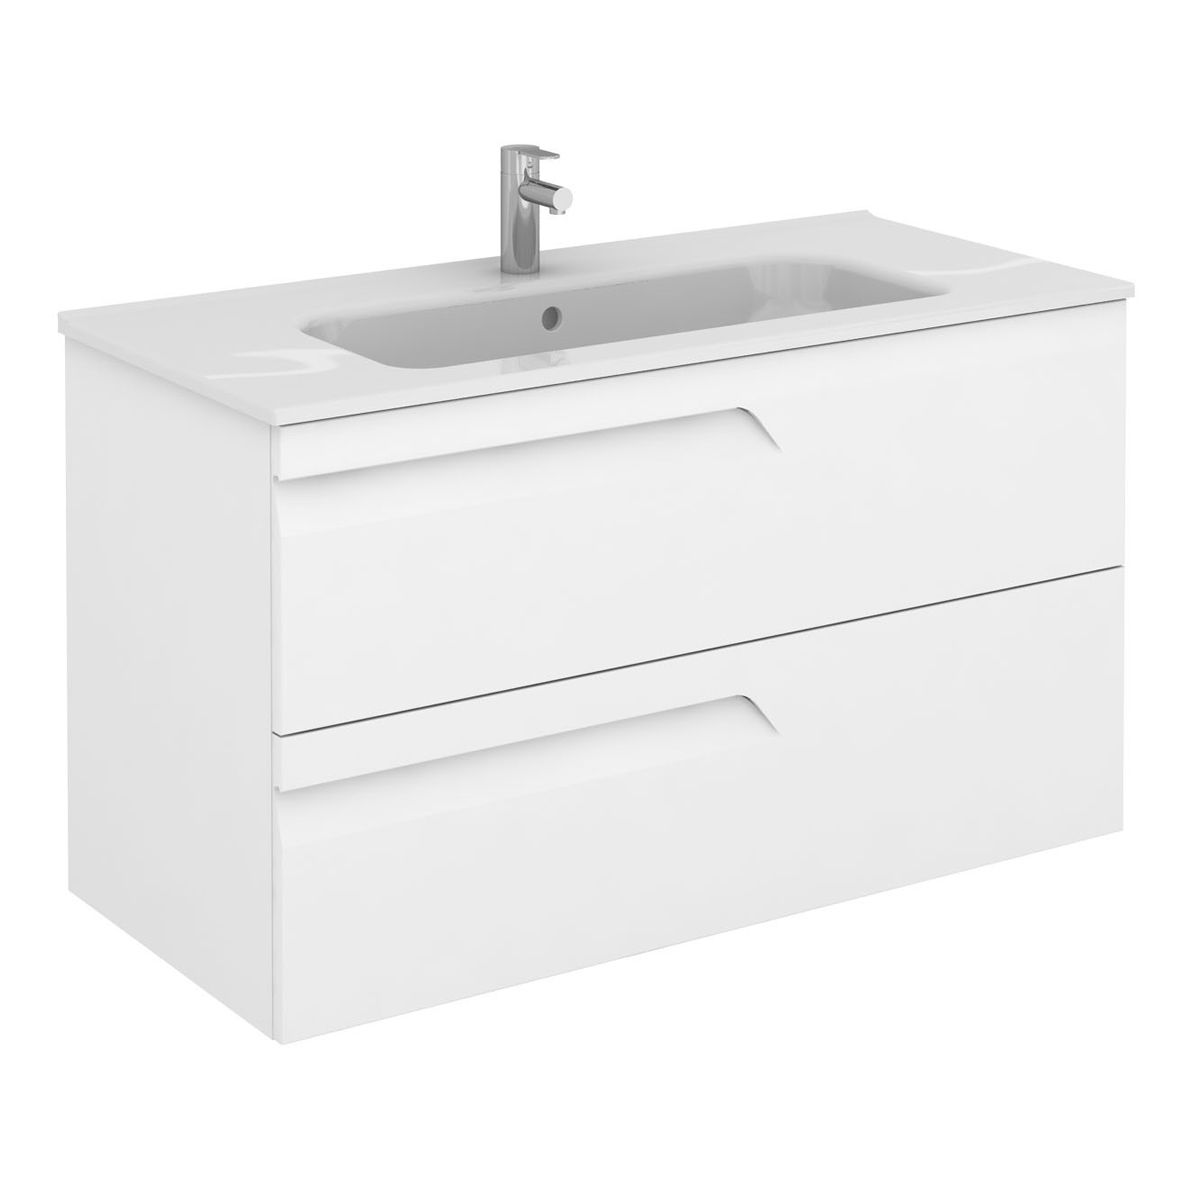 Frontline Vitale Gloss White Wall Mounted Vanity Unit 1000mm